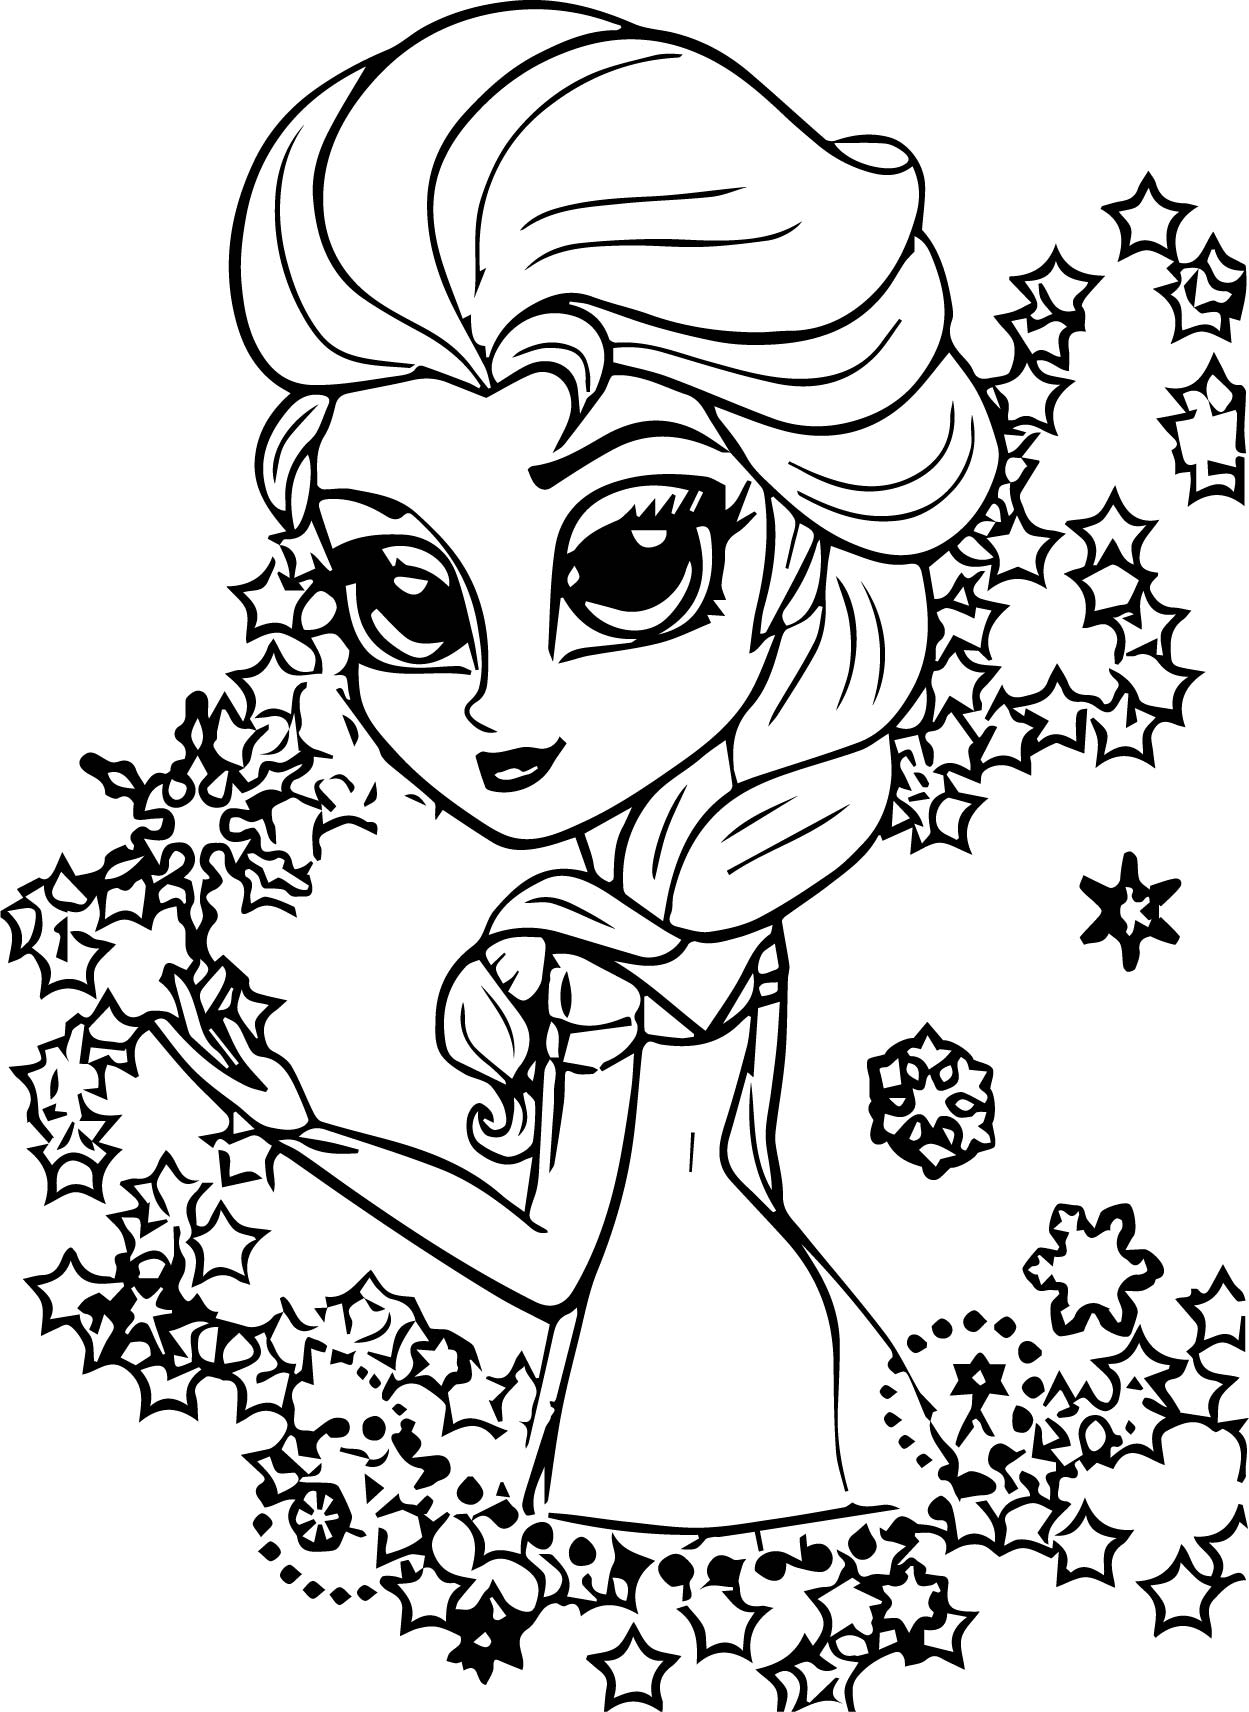 Chibi Frozen Characters Coloring Pages Teen Titans Chibi Coloring ...